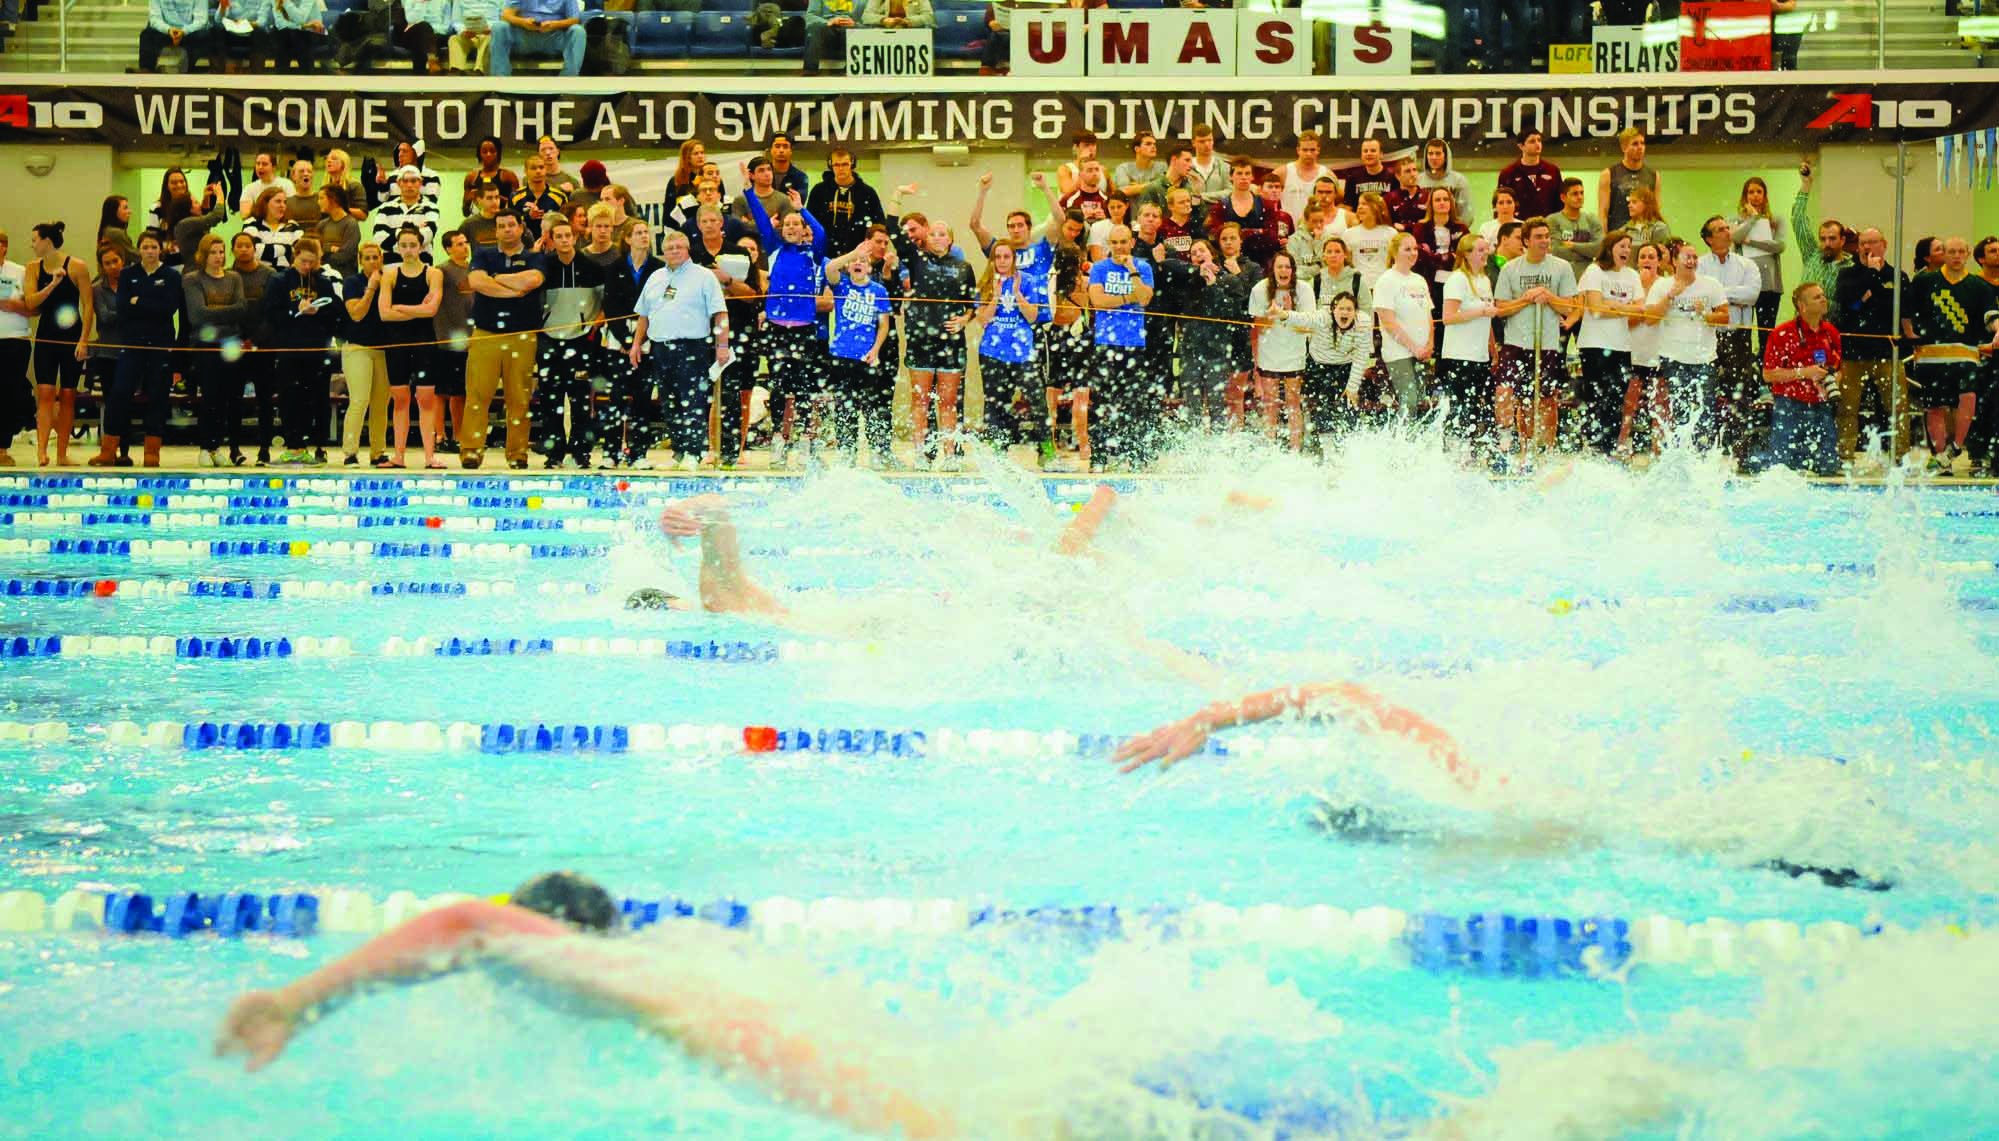 A-10 meet for swimming